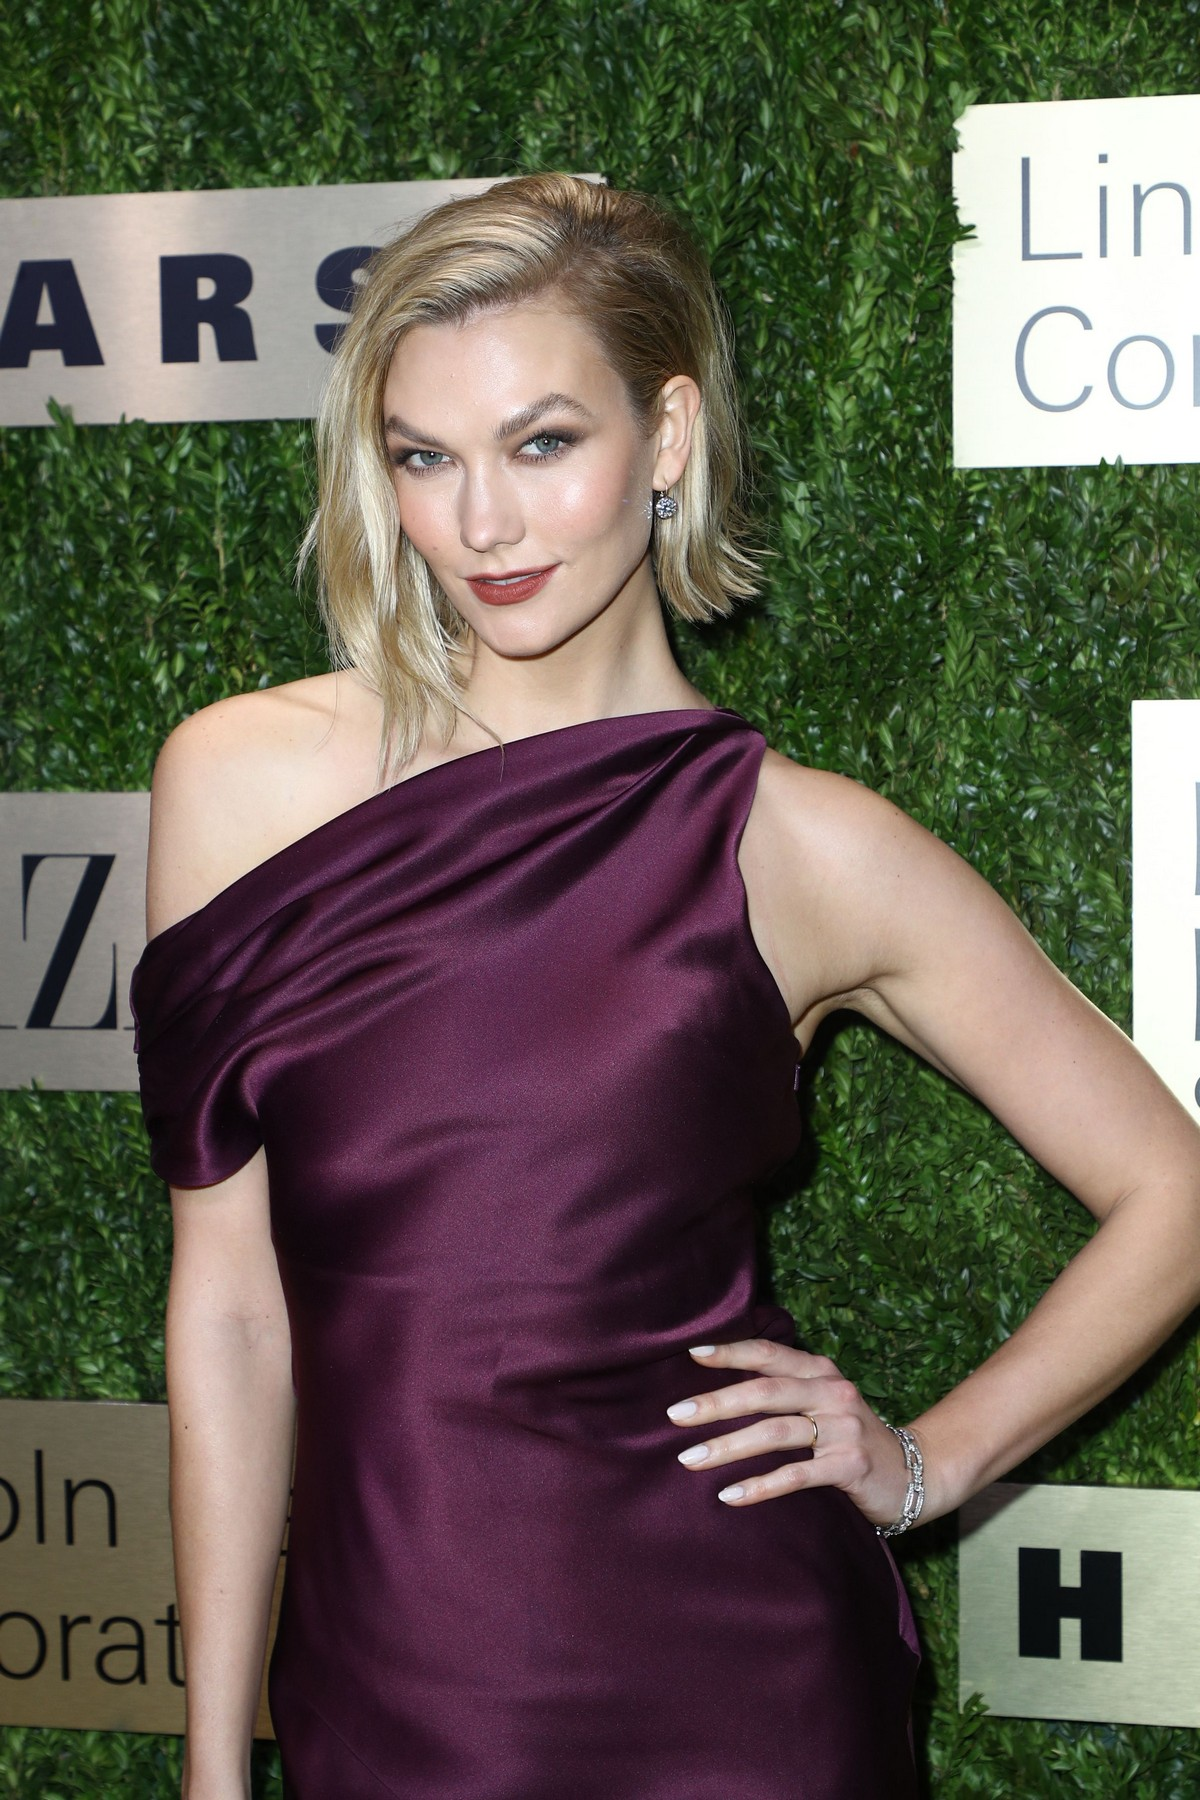 Karlie Kloss attends Lincoln Center Corporate Fashion Fund Gala in New York City 2019/11/18 18